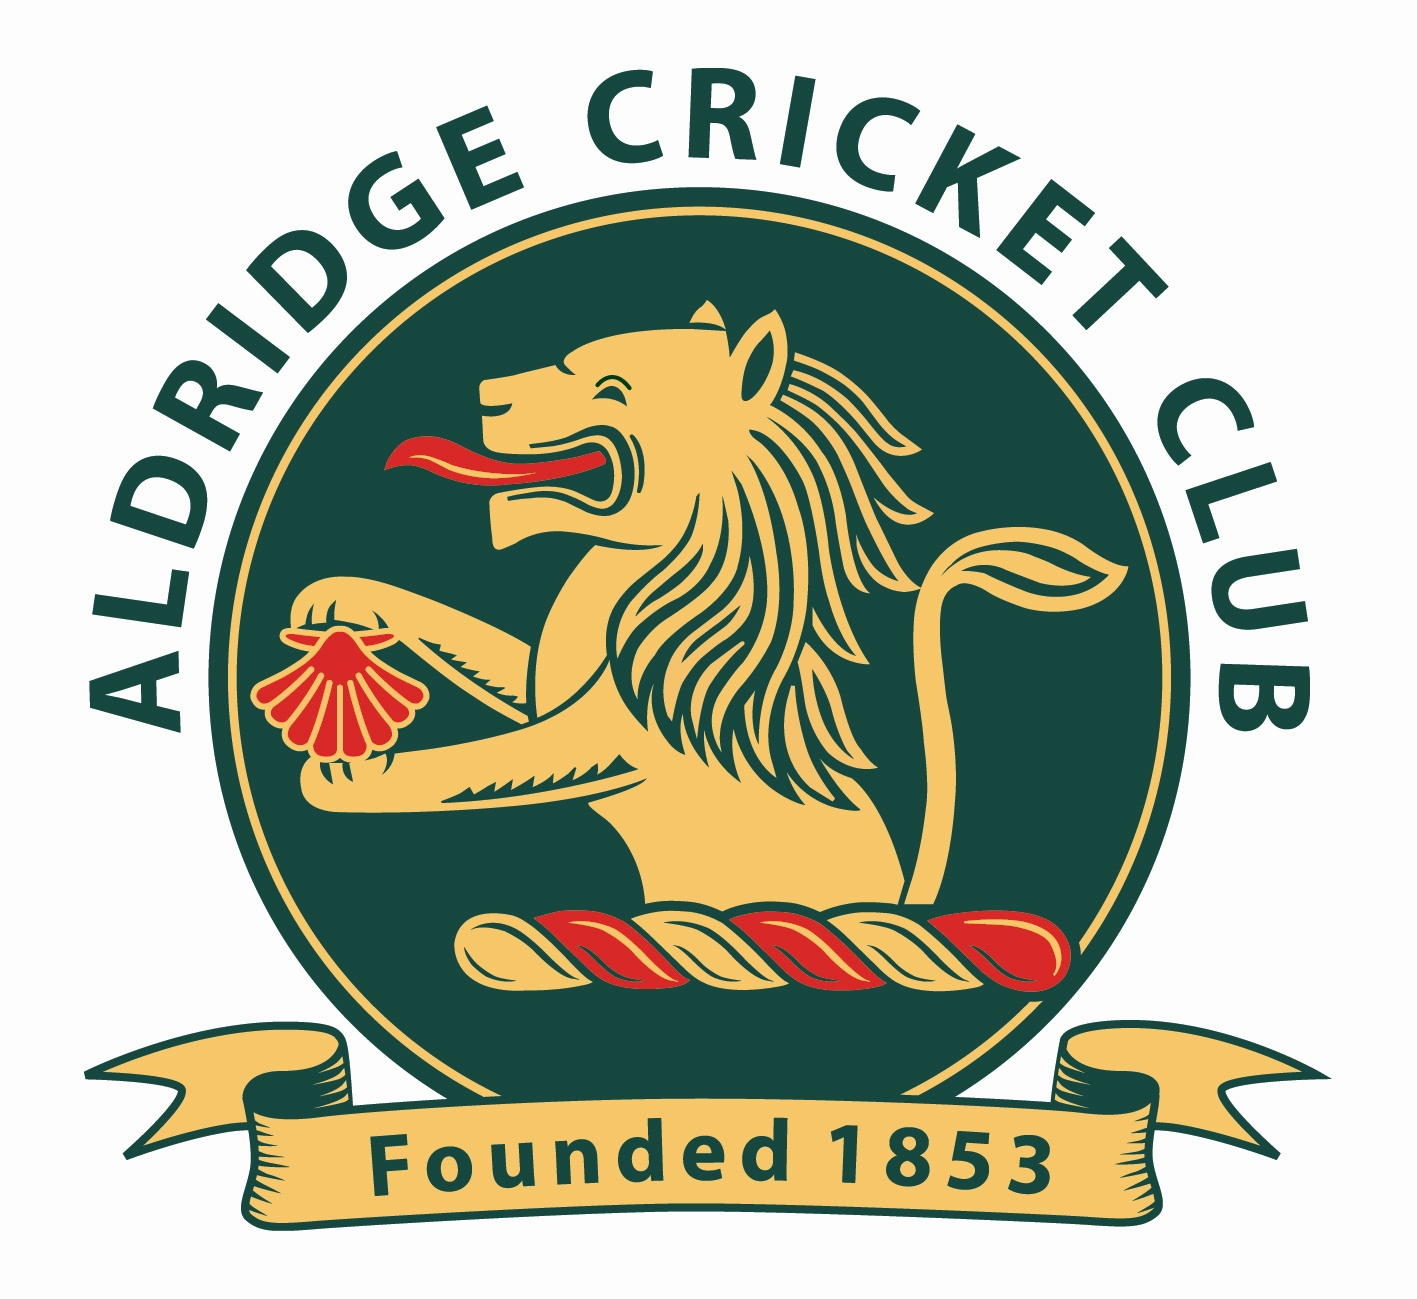 Buy your copy of The History of Aldridge Cricket Club 1853 - 2003   from Aldridge website